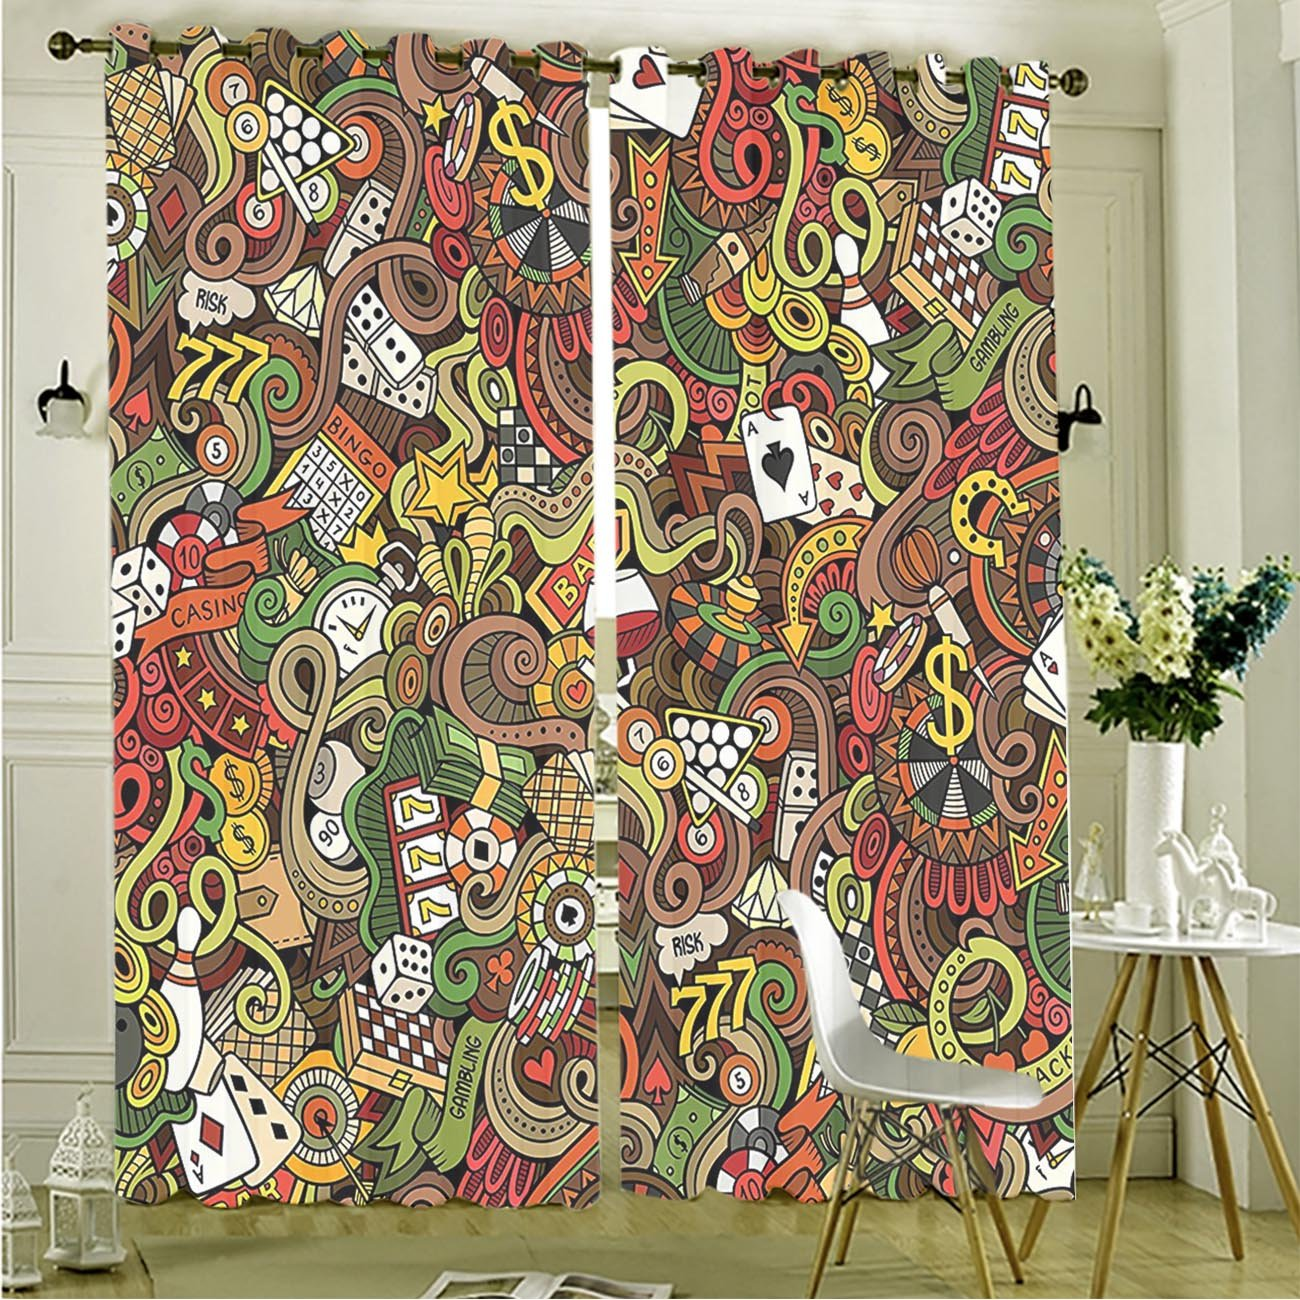 Two Panel Set Window Curtain Casino Decorations Doodles Style Art Bingo Excitement Checkers King Tambourine Vegas Polyester Window Treatments For Bedroom Diningroom Livingroom Dorm, 108''Wx84''L by LzzHc3